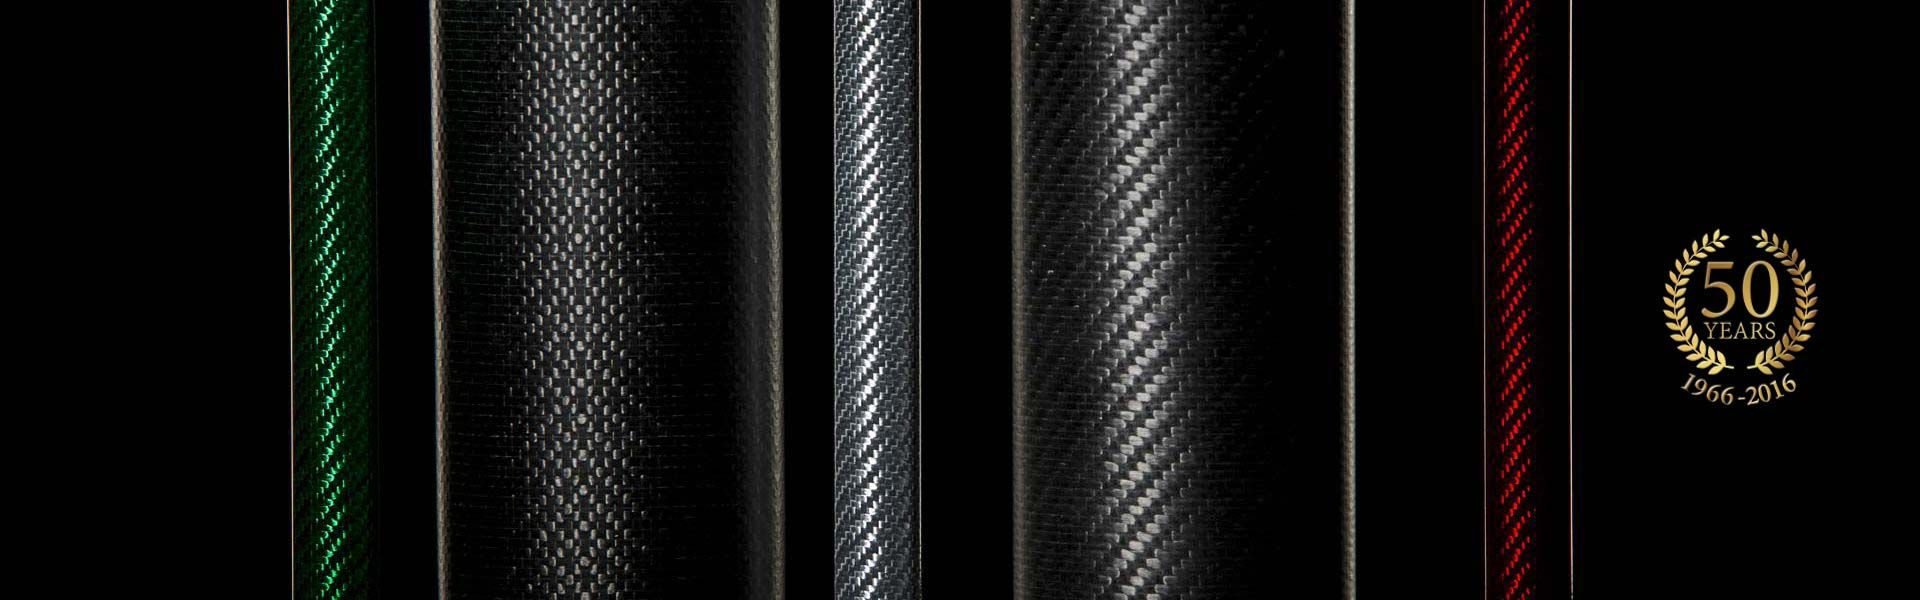 Manufacture of carbon tubes